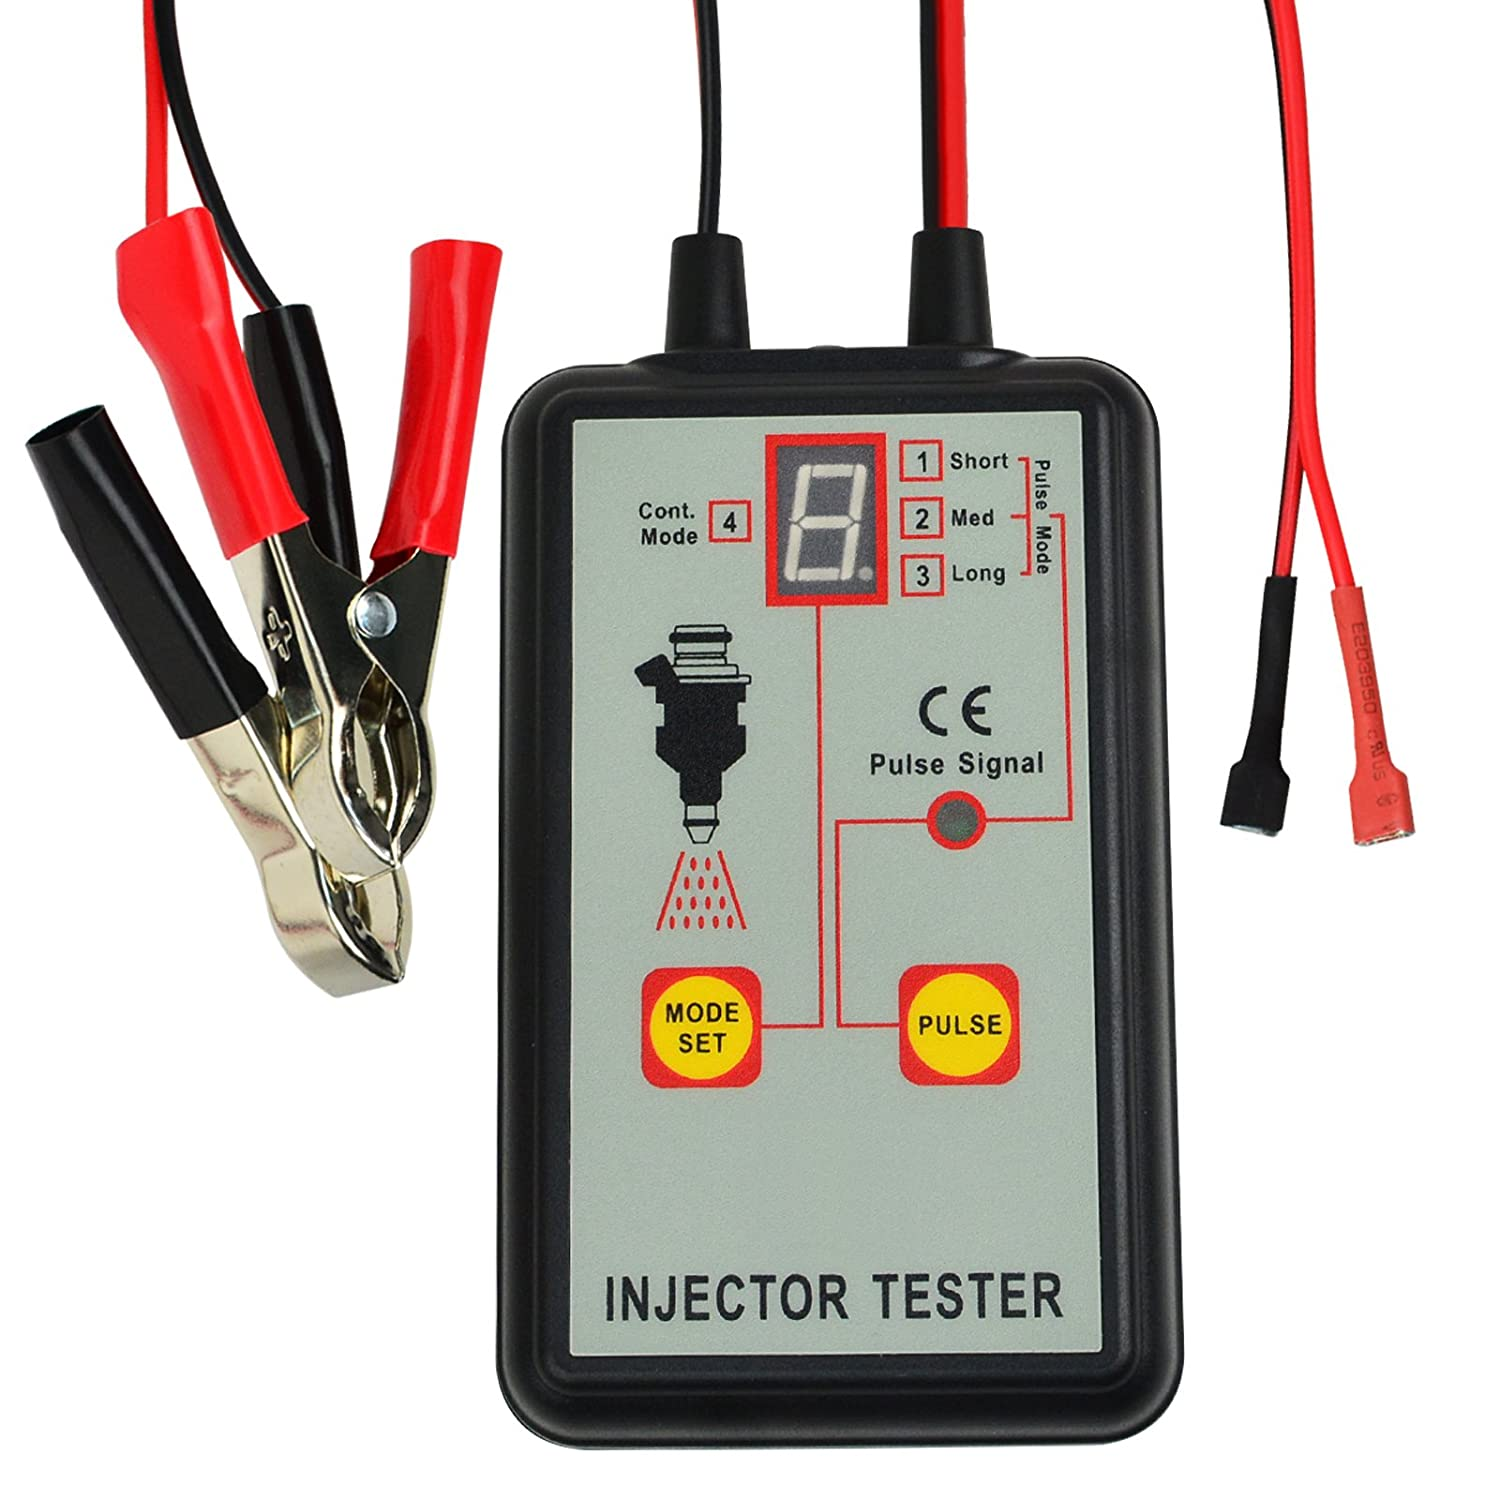 Automotive Fuel Injector Tester, 12V 4 Pulse Modes Handheld Car Vehicle Fuel Pressure System Diagnostic Scan Testing Tool Gauge, Individual Test Stuck/Leaking/Burnt-out Problem Gain Express Holdings Ltd E04-039